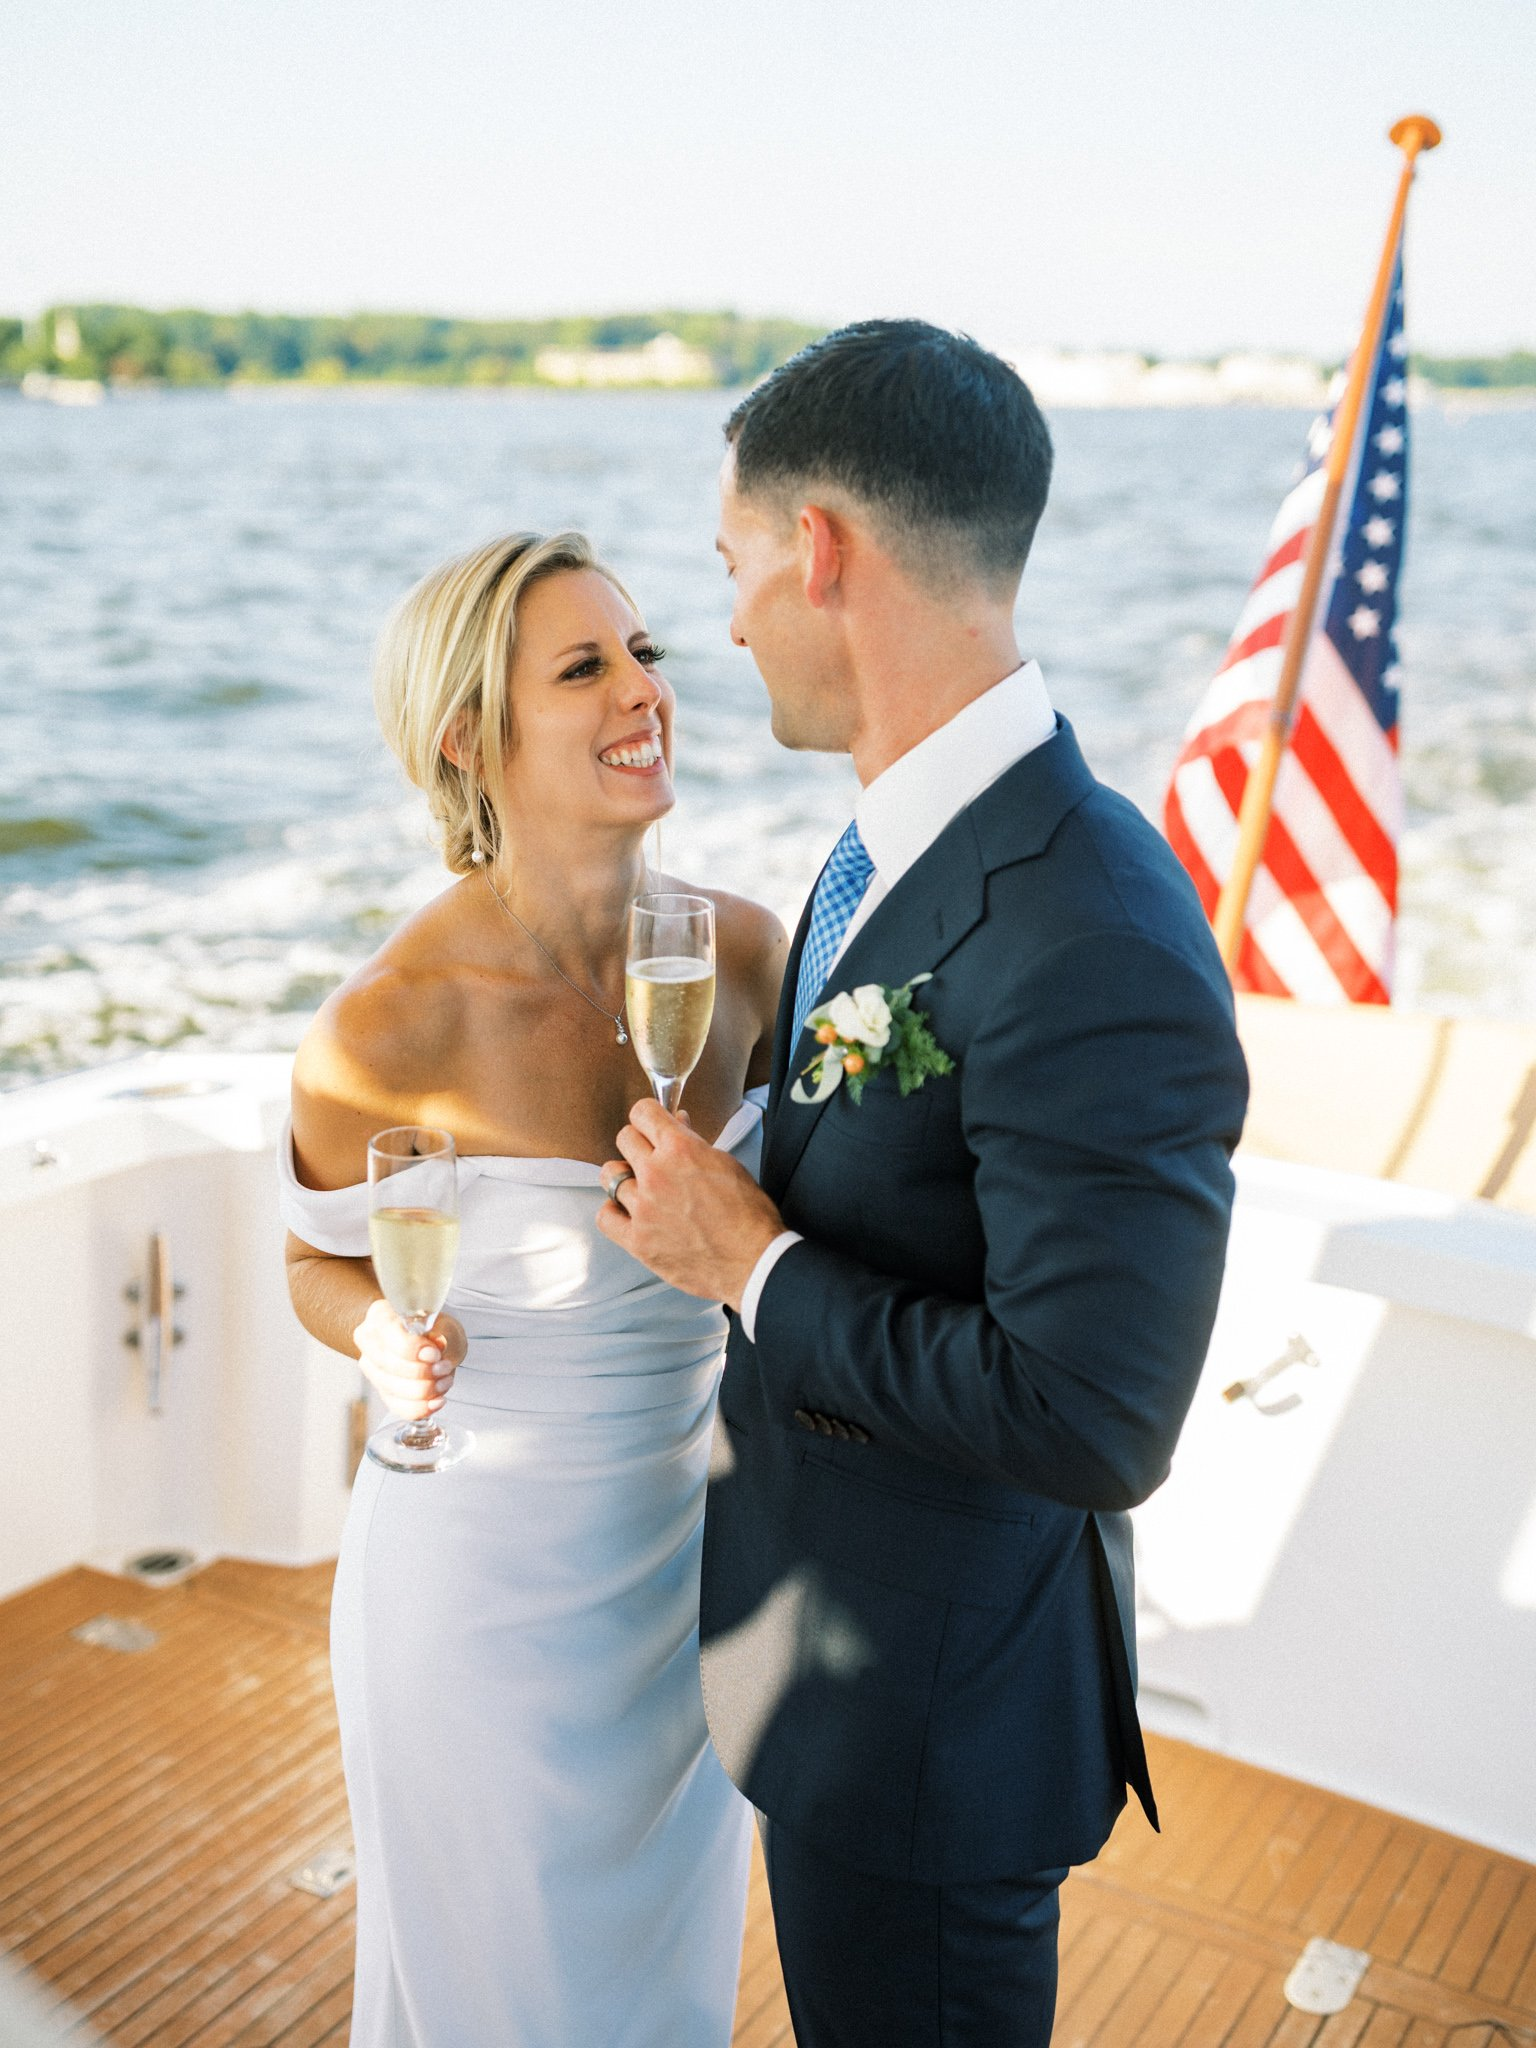 Gray_Joiner_e. losinio photography_annapolis-maryland-waterfront-elopement-330